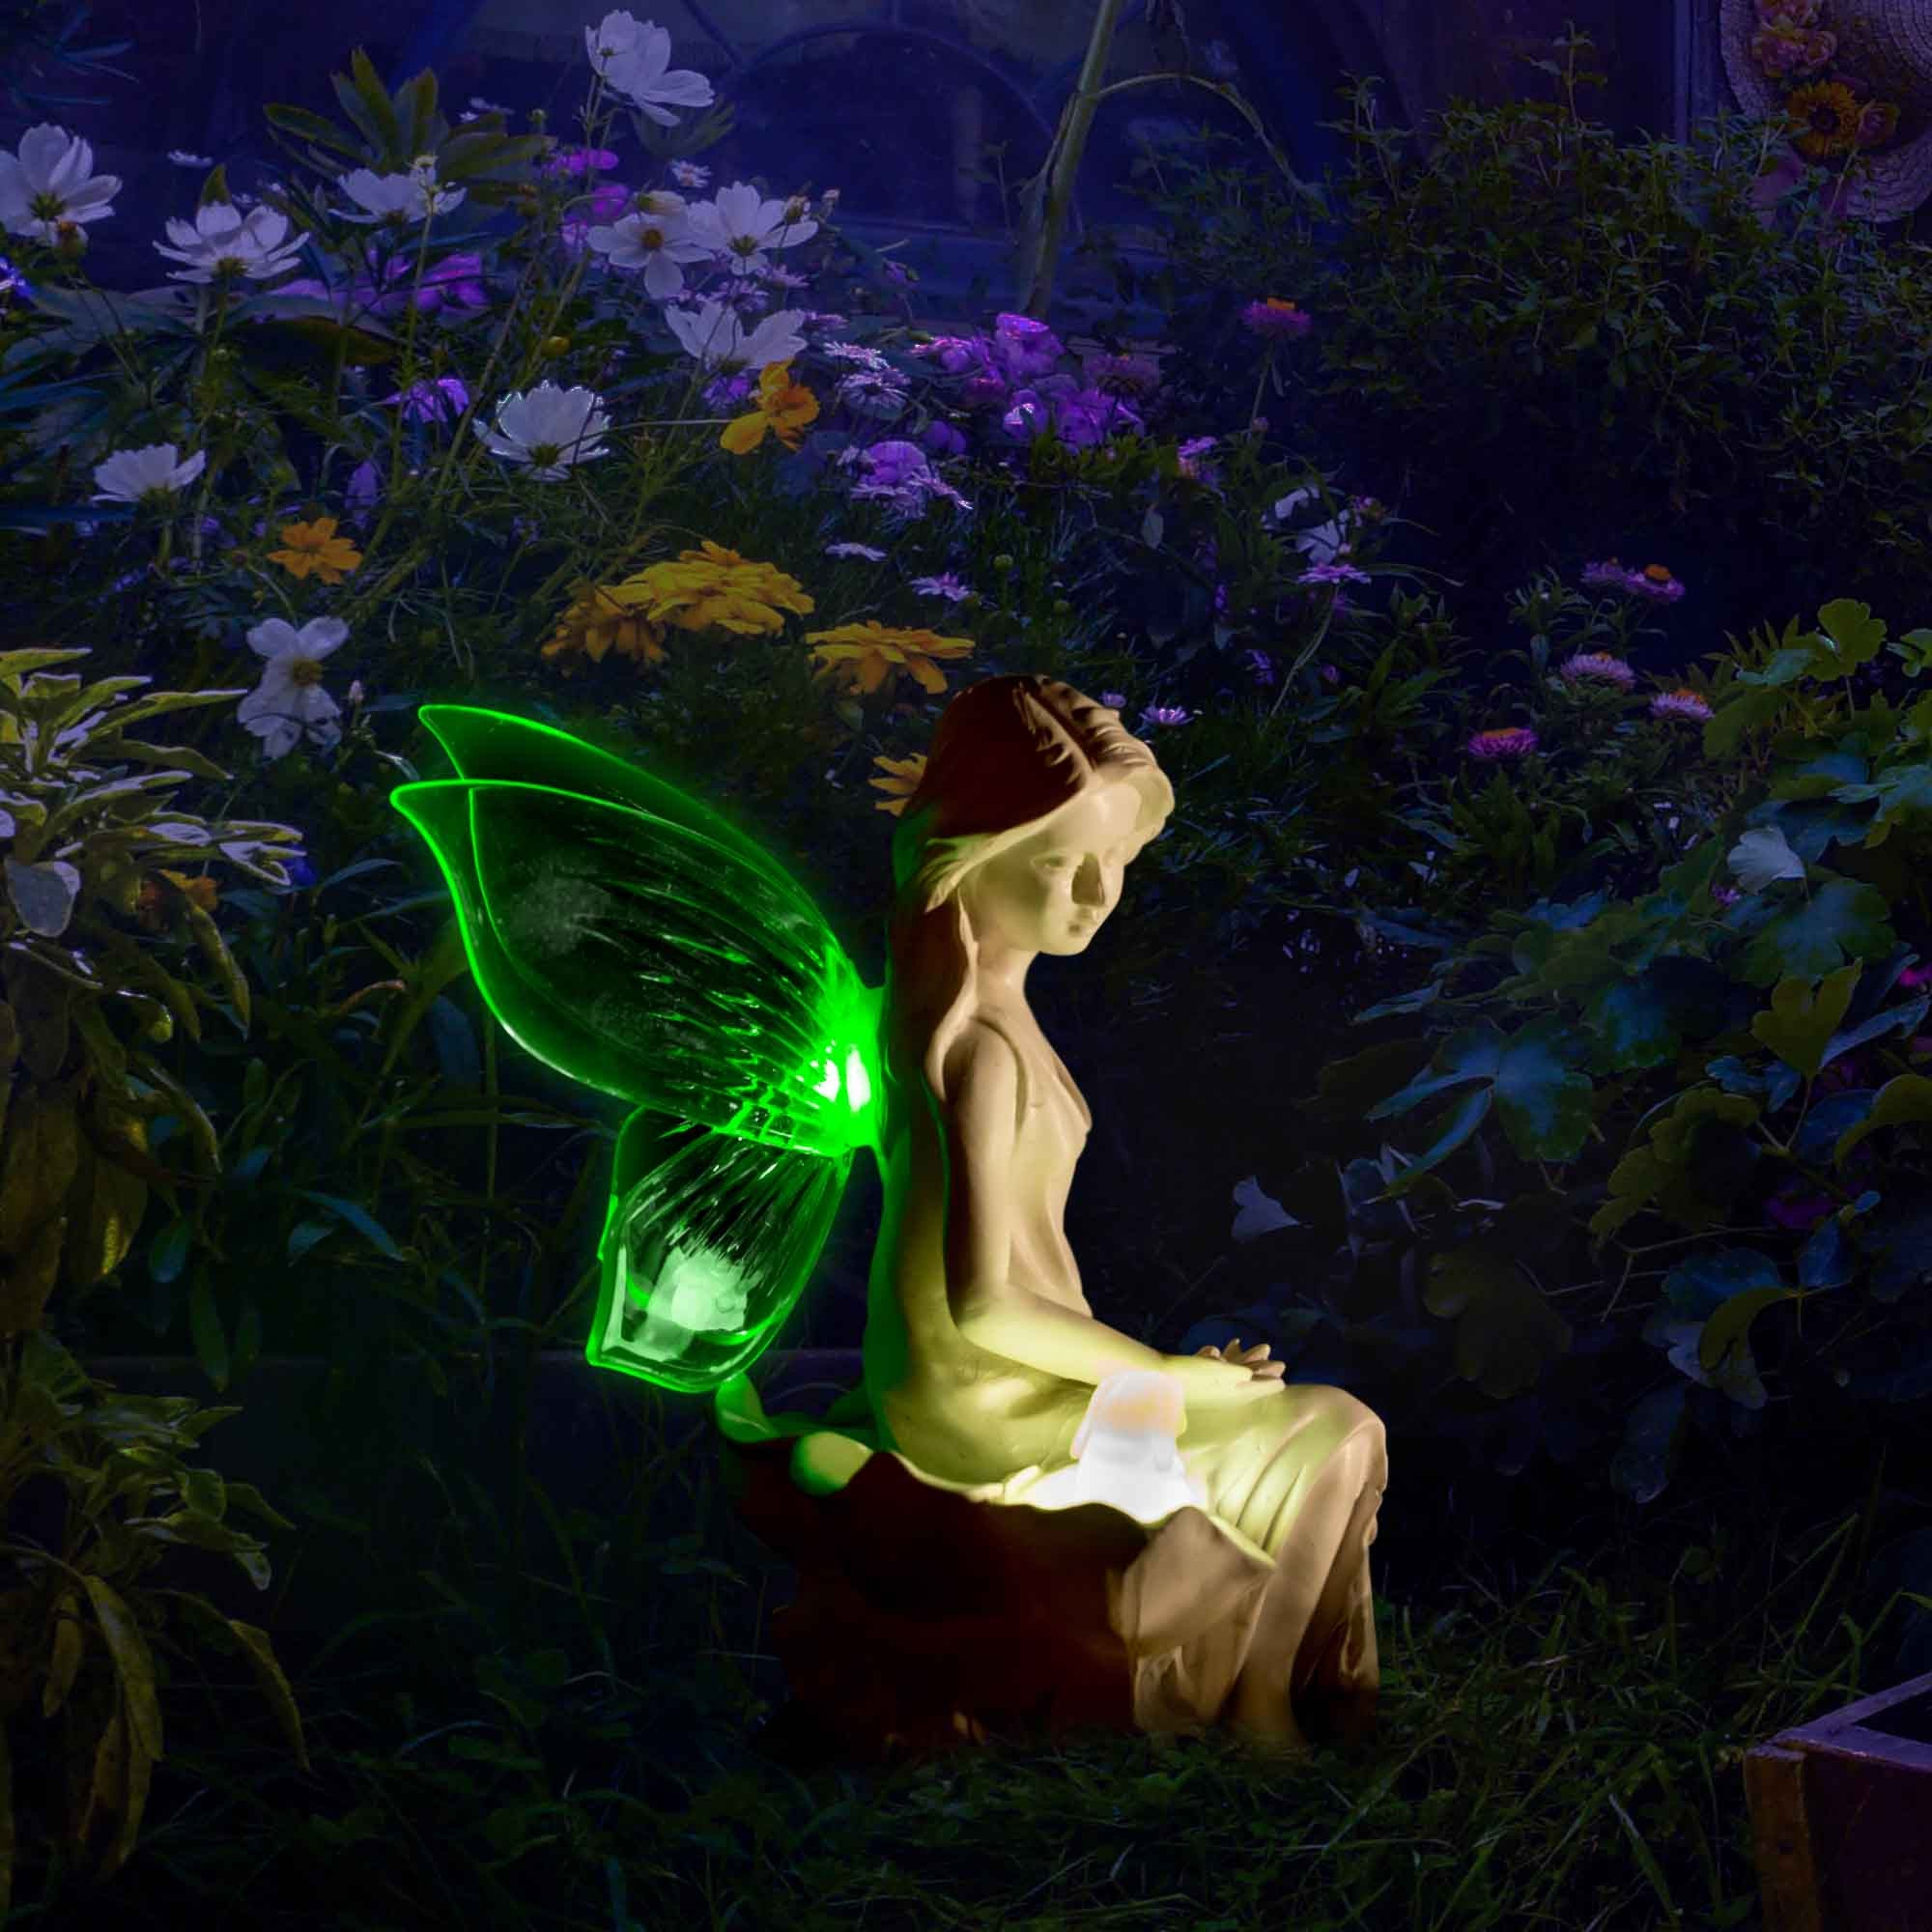 Solar angel fairy figurine lights with color changing butterfly wings my dream palace - Garden solar decorations ...